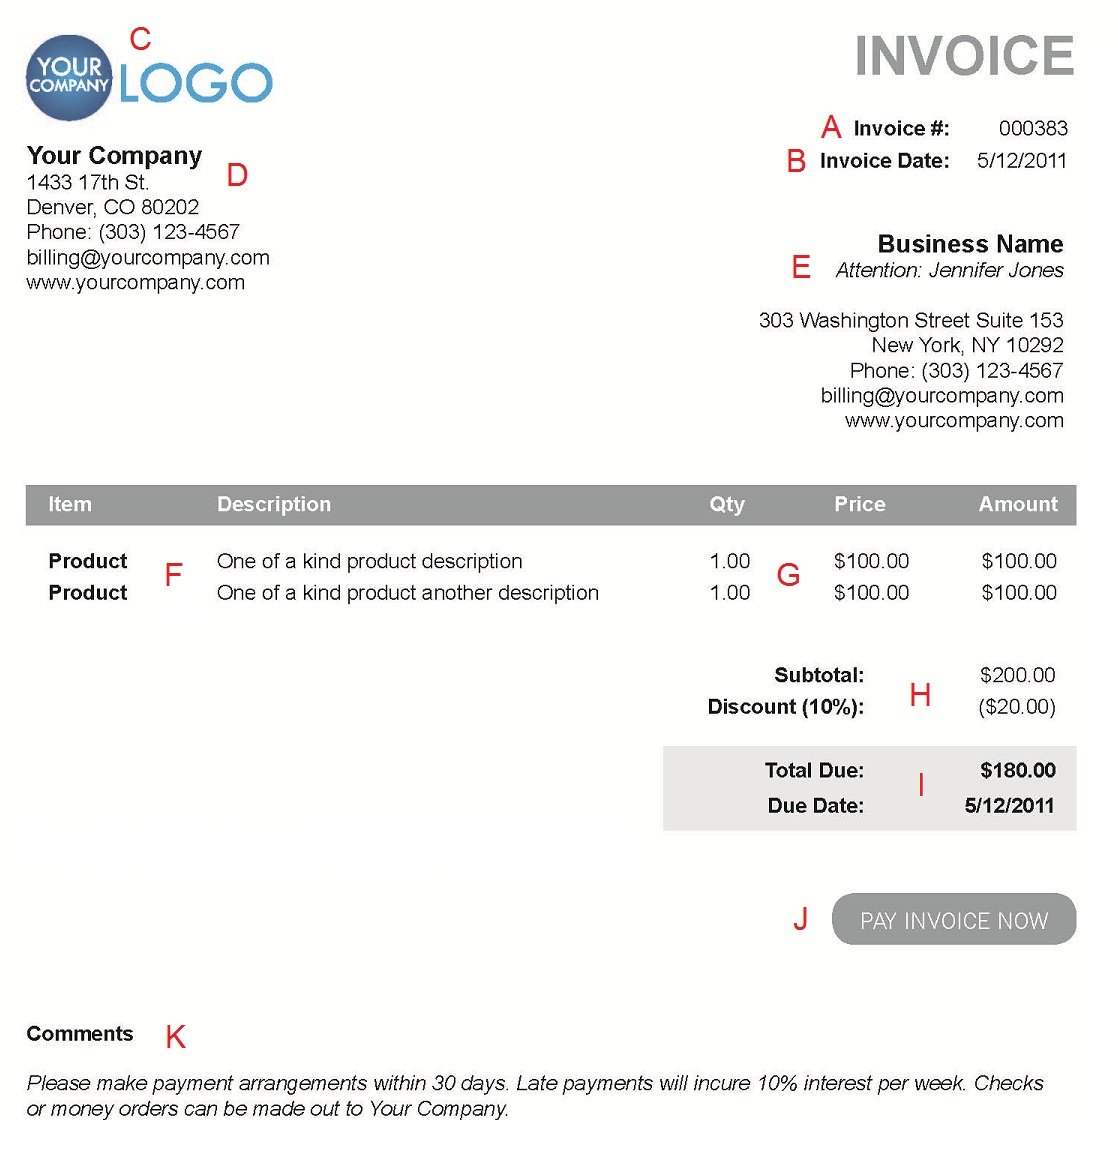 Angkajituus  Pretty The  Different Sections Of An Electronic Payment Invoice With Handsome A  With Enchanting In The Invoice Or On The Invoice Also What Is A Tax Invoice Australia In Addition Invoice Portal And Invoice Generator Free Download As Well As Invoice To Go App Additionally Kia Soul Invoice Price From Paysimplecom With Angkajituus  Handsome The  Different Sections Of An Electronic Payment Invoice With Enchanting A  And Pretty In The Invoice Or On The Invoice Also What Is A Tax Invoice Australia In Addition Invoice Portal From Paysimplecom